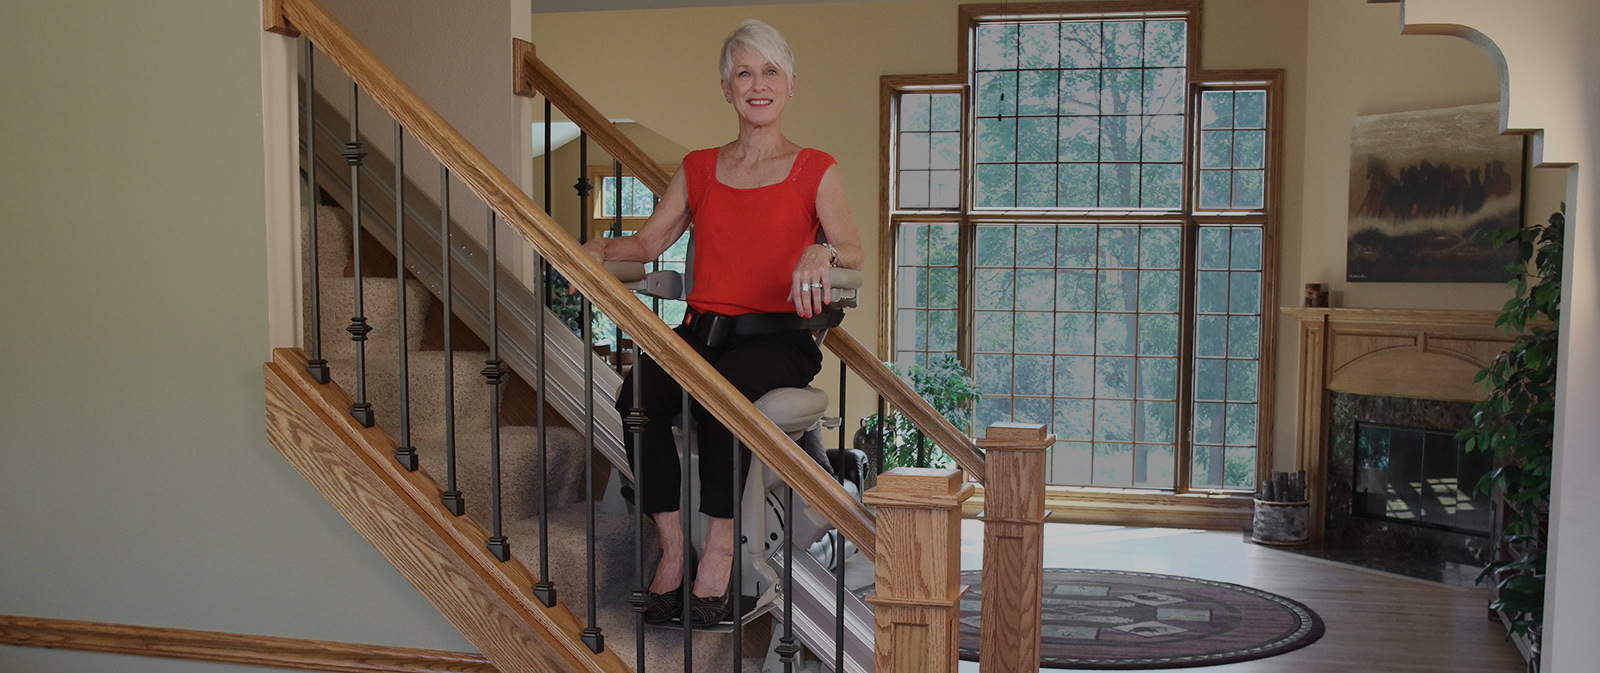 kraus stairlift chair stairchair · kraus elderly handicapped chair stairlift ... & san diego Kraus indoor stairlifts are outdoor chair stair lift ...